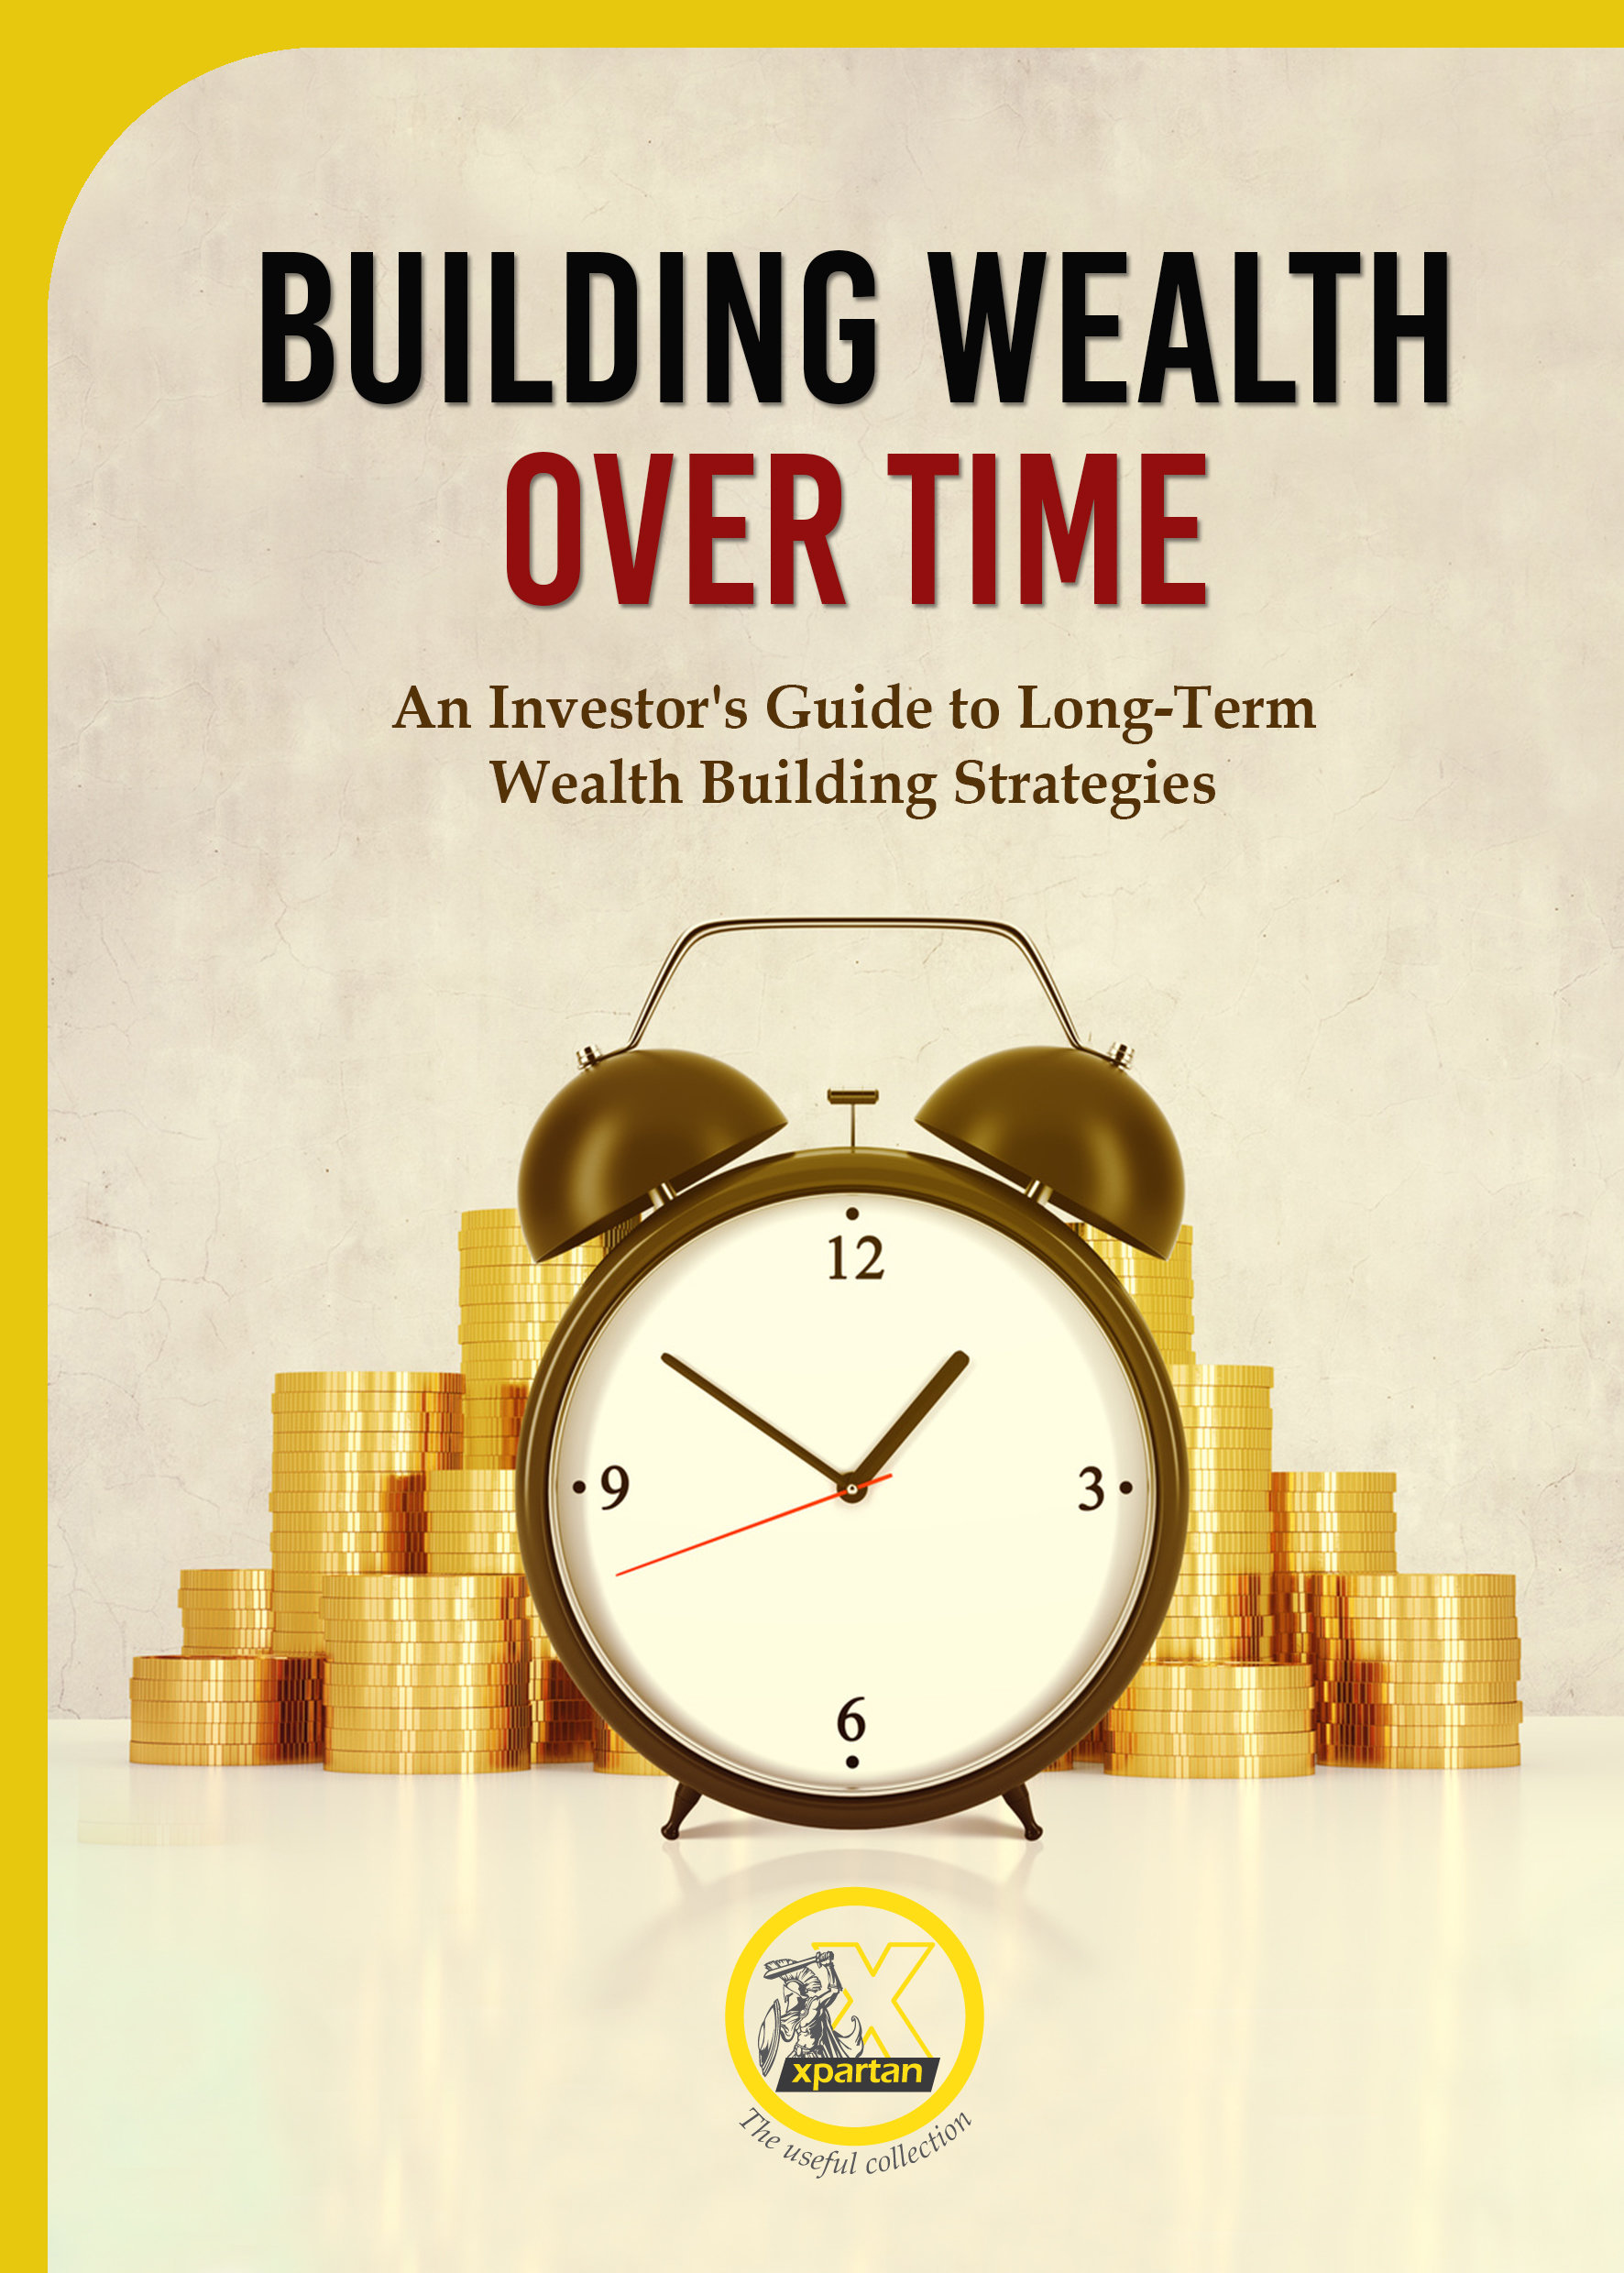 Building Wealth over Time 00003